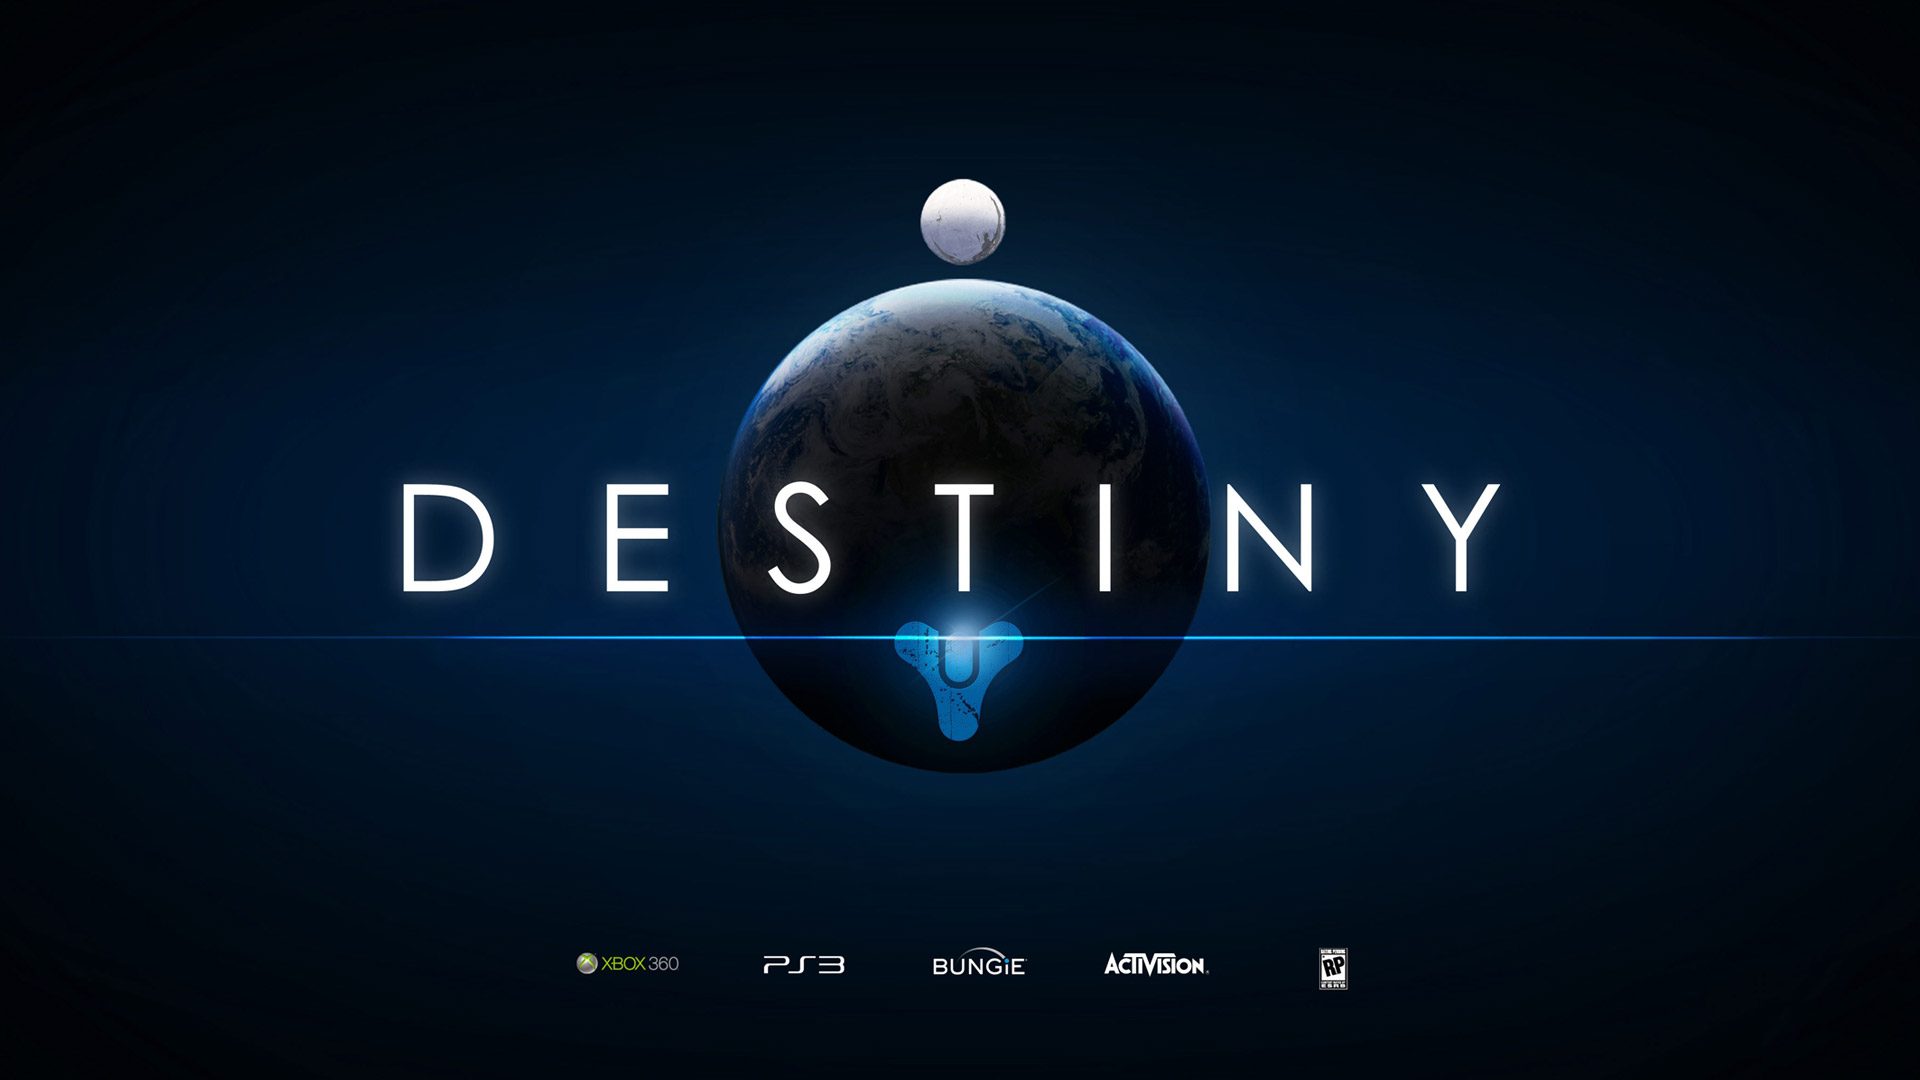 Destiny Wallpaper 1920X1080 - WallpaperSafari